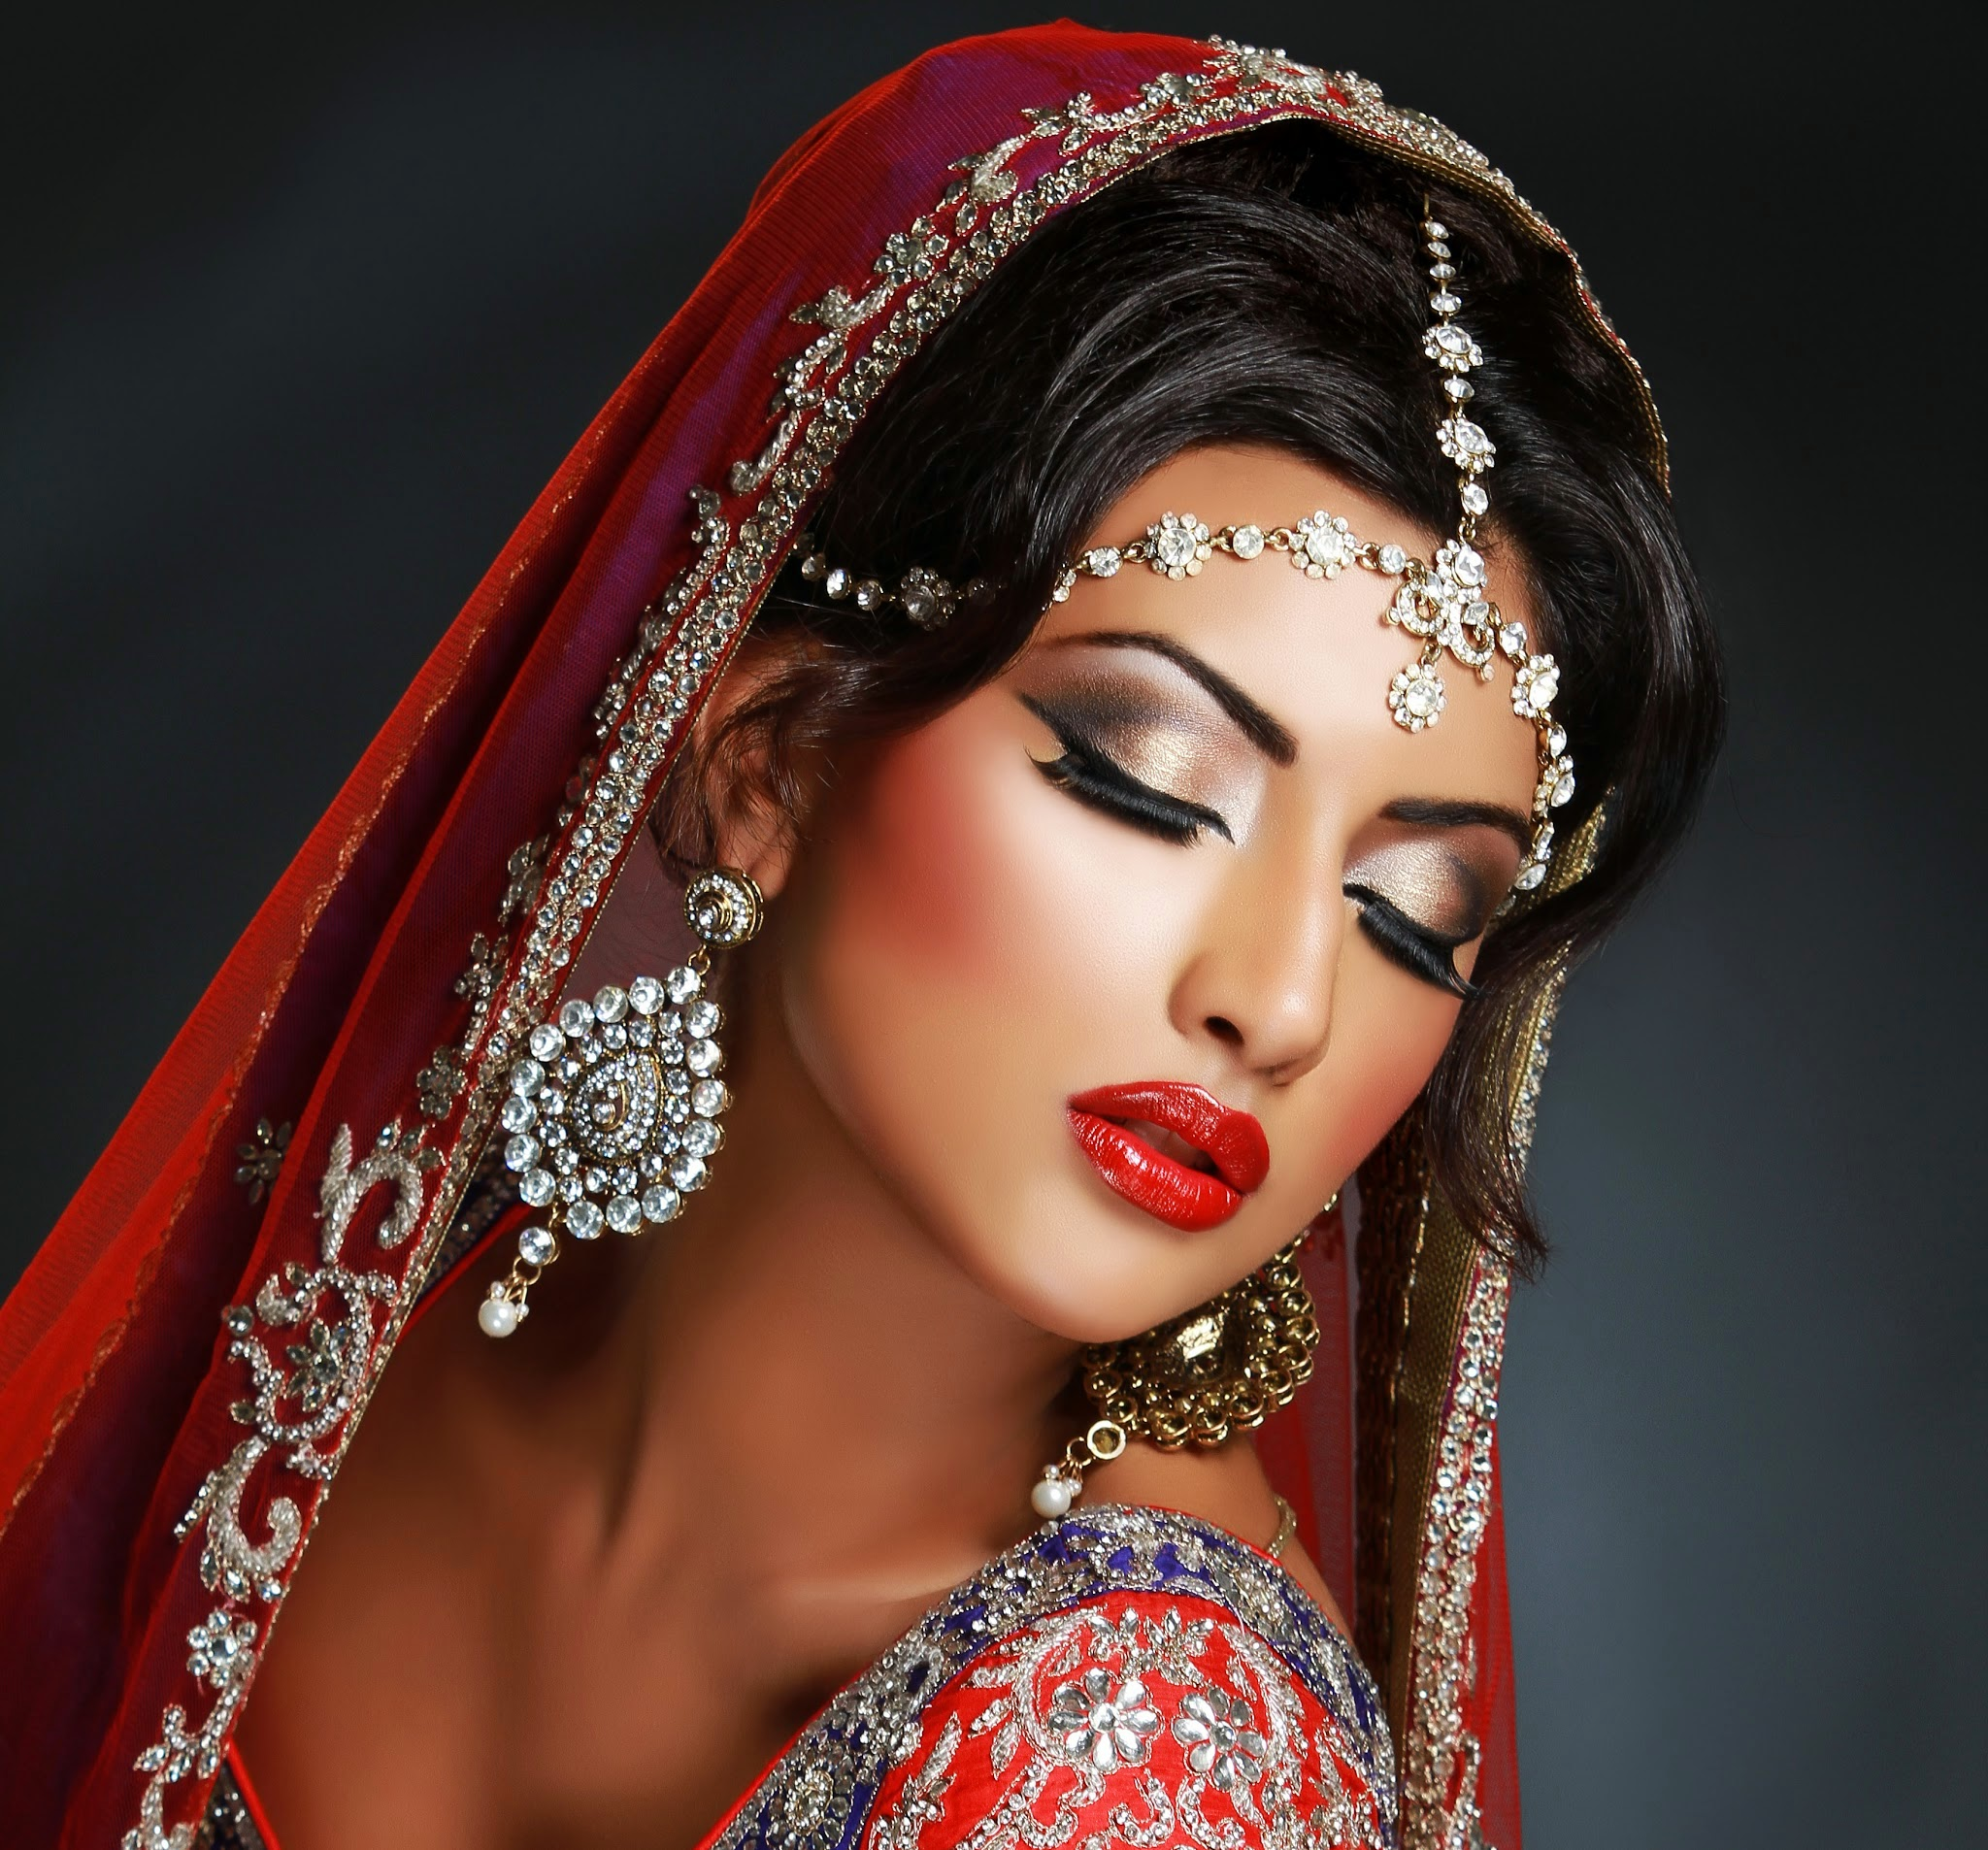 How To Become Bridal Makeup Artist : Gallery For > Wedding Makeup Artistry